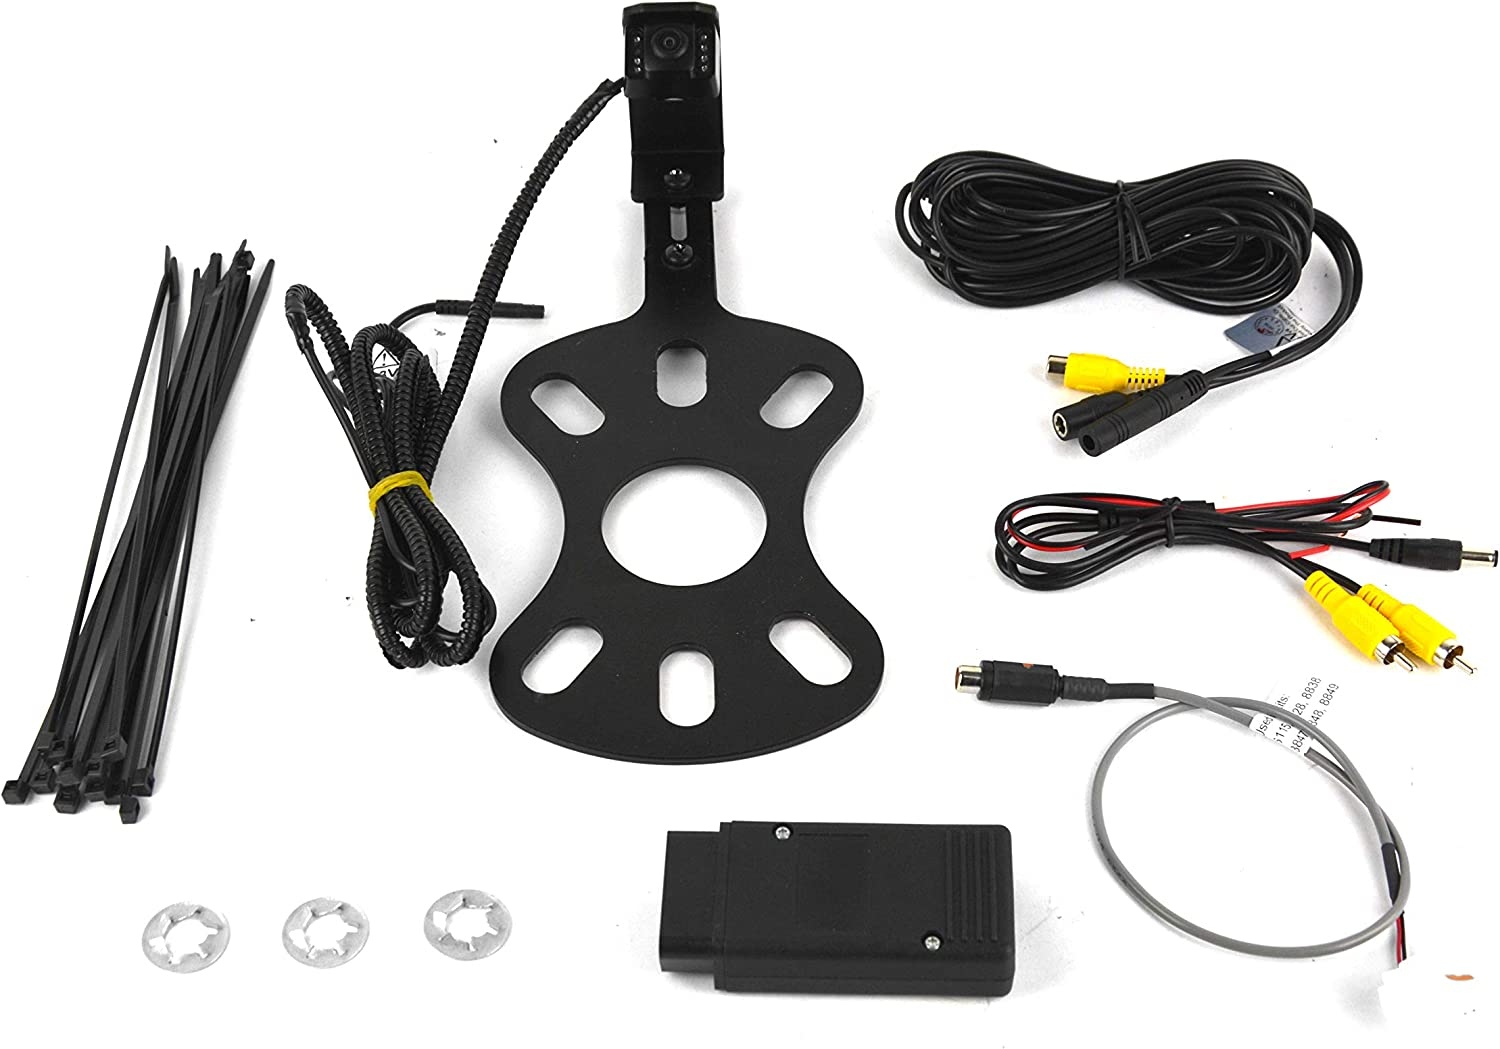 Brandmotion 9002-8817 Rear Vision Camera and Fixed Bracket for 2007-2018 Jeep Wrangler JK with Factory Display